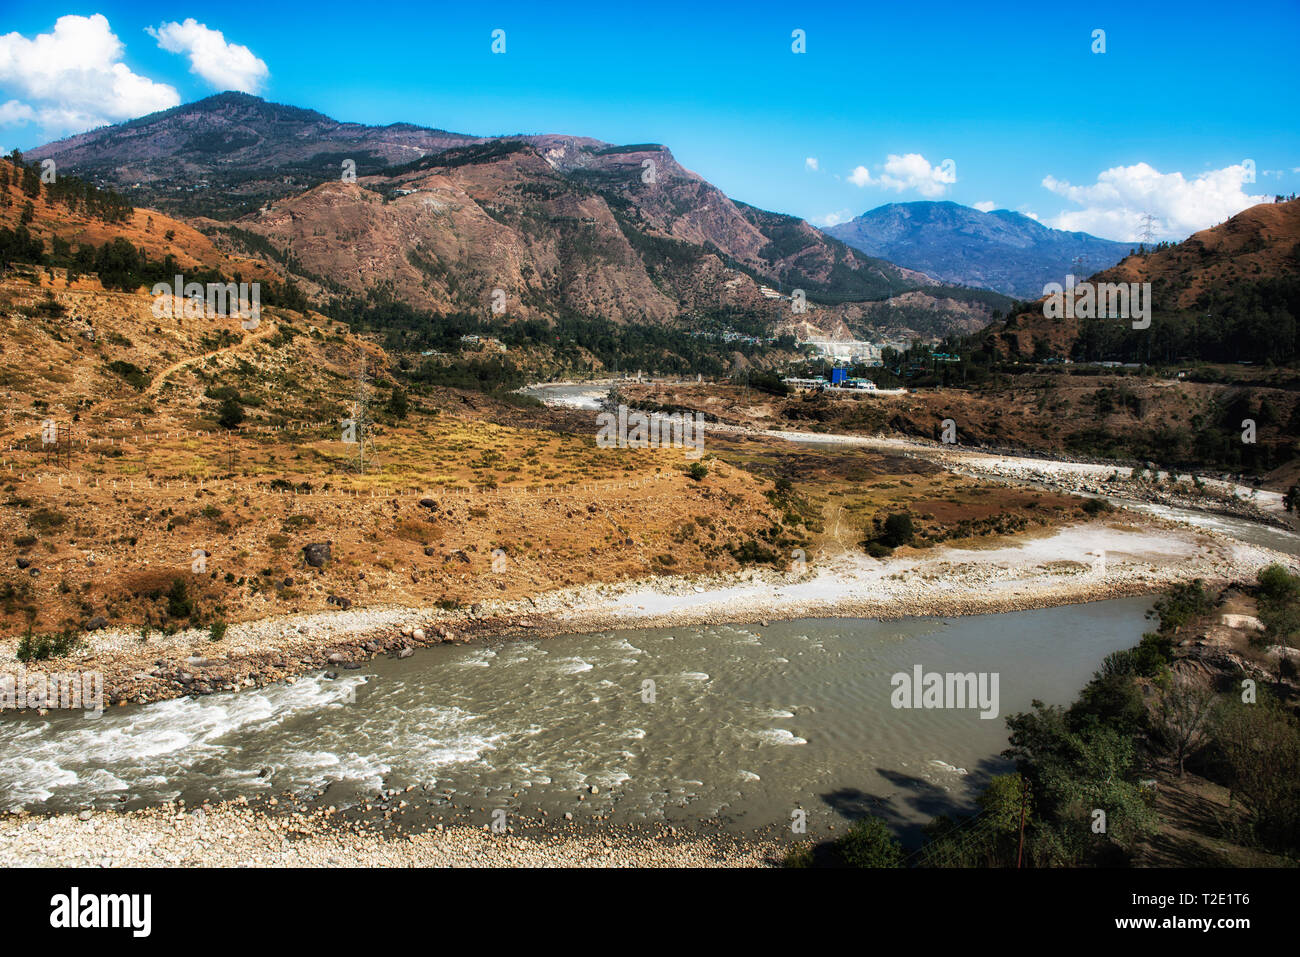 A river in Himachal Pradesh, India - Stock Image